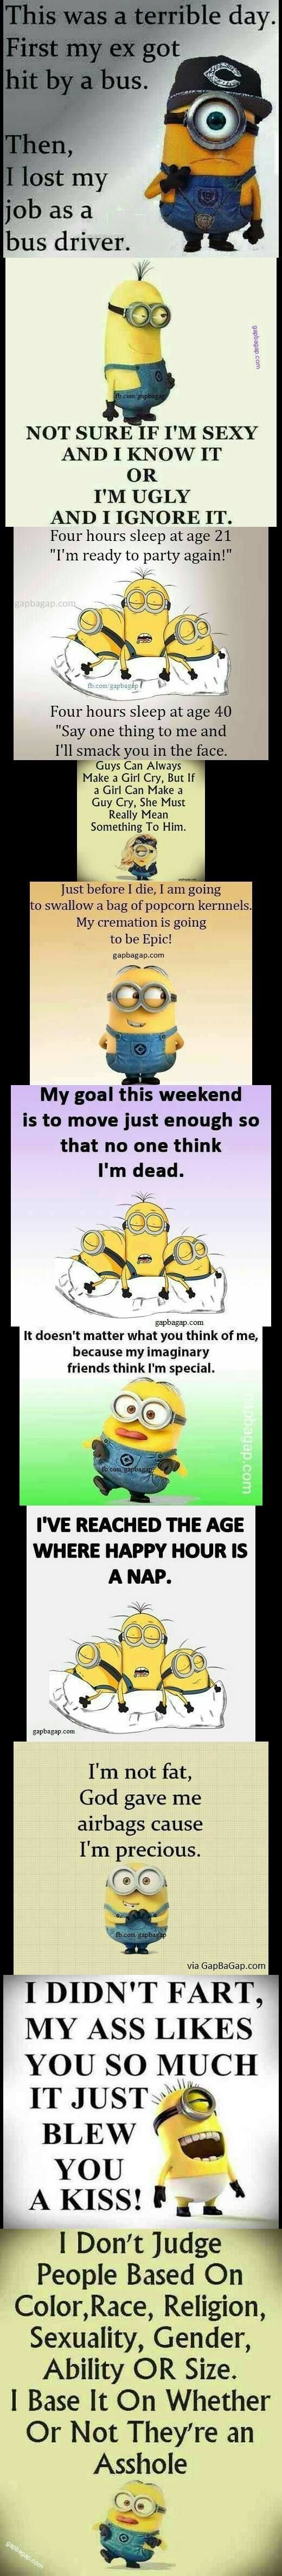 Top 11 Funniest Memes By The #Minions... - 11, Funniest, funny minion quotes, Funny Quote, Memes, Minions, Top - Minion-Quotes.com